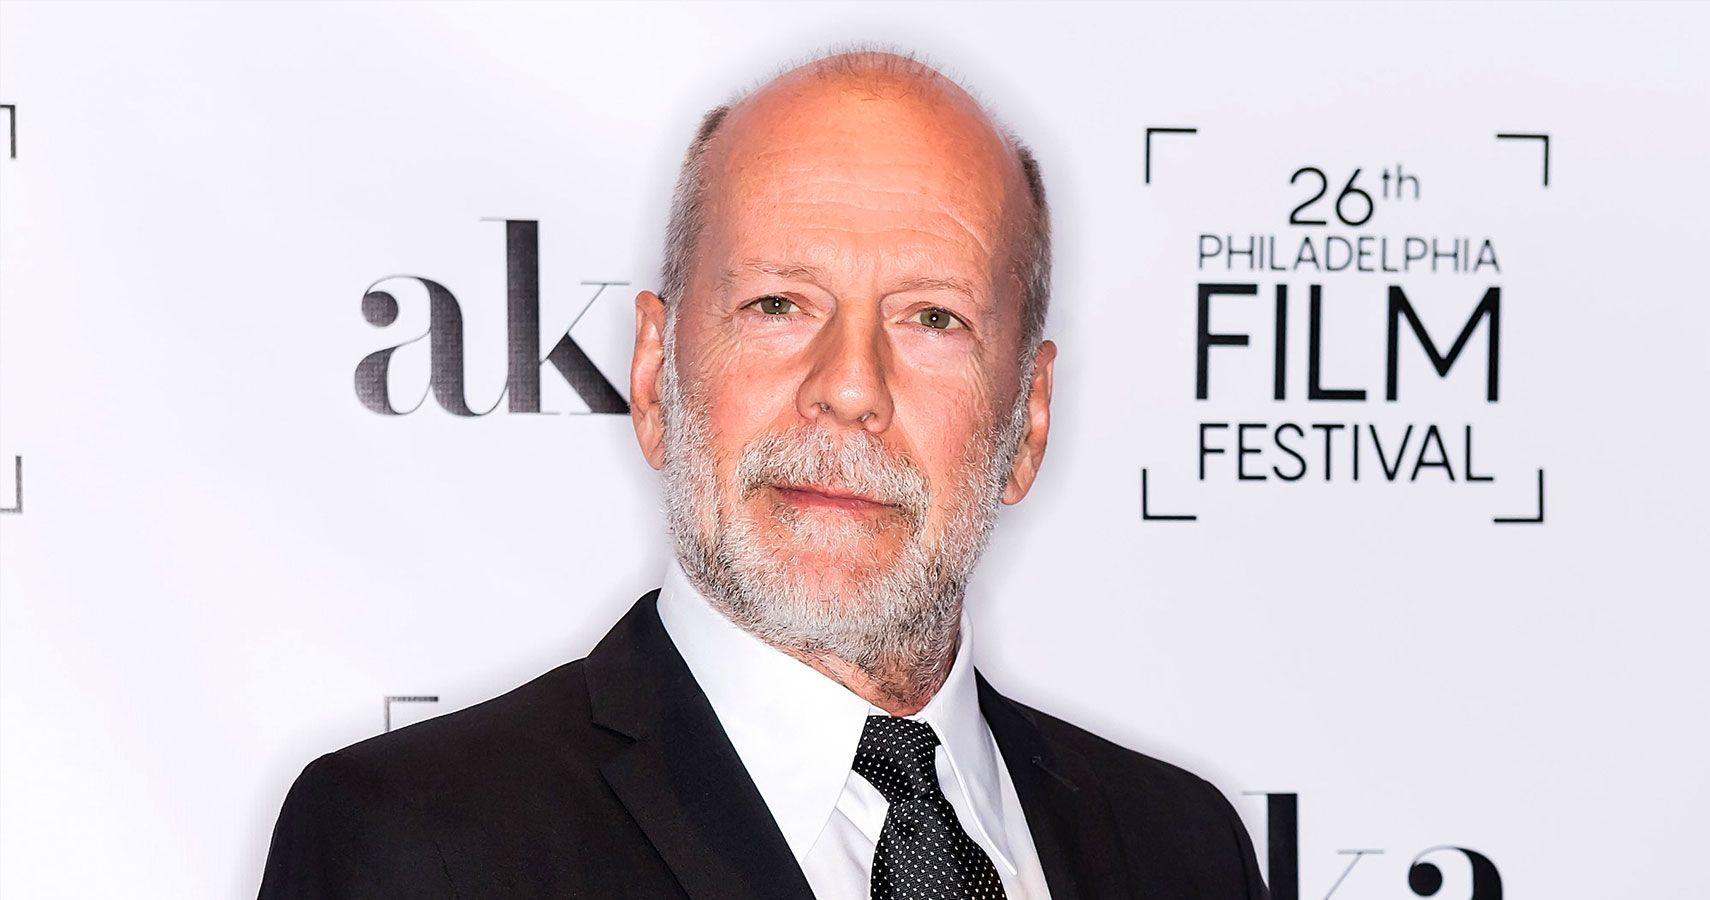 Bruce Willis: The A-List Star Whose Career Has Now Died Hard